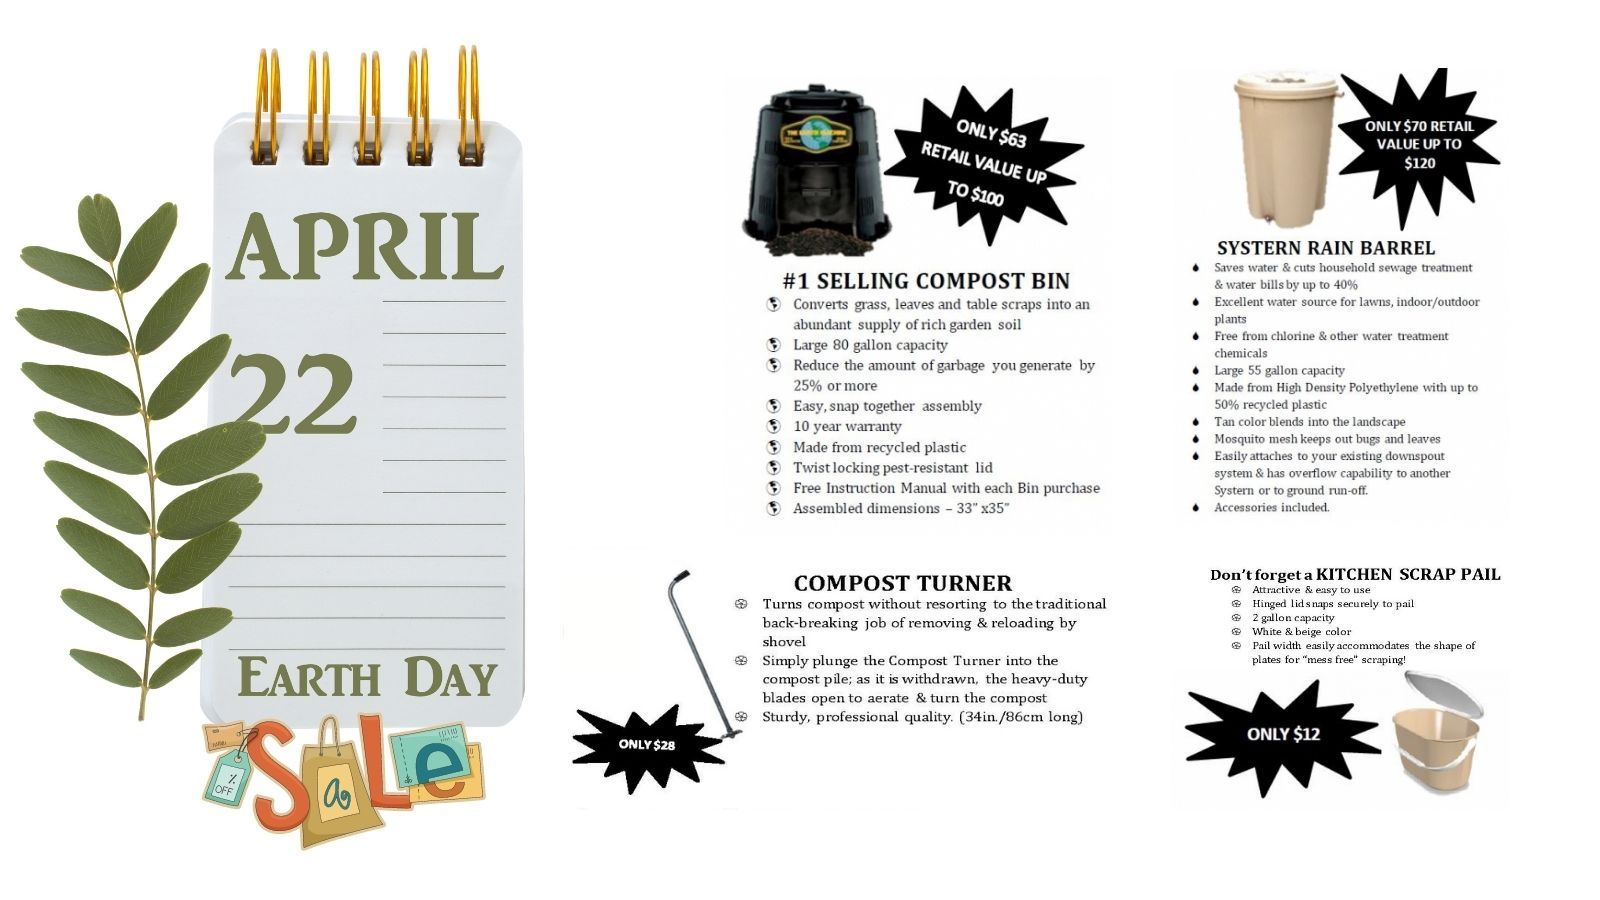 earth day sale with photos of compost and rain barrels as well as compost pail and turner